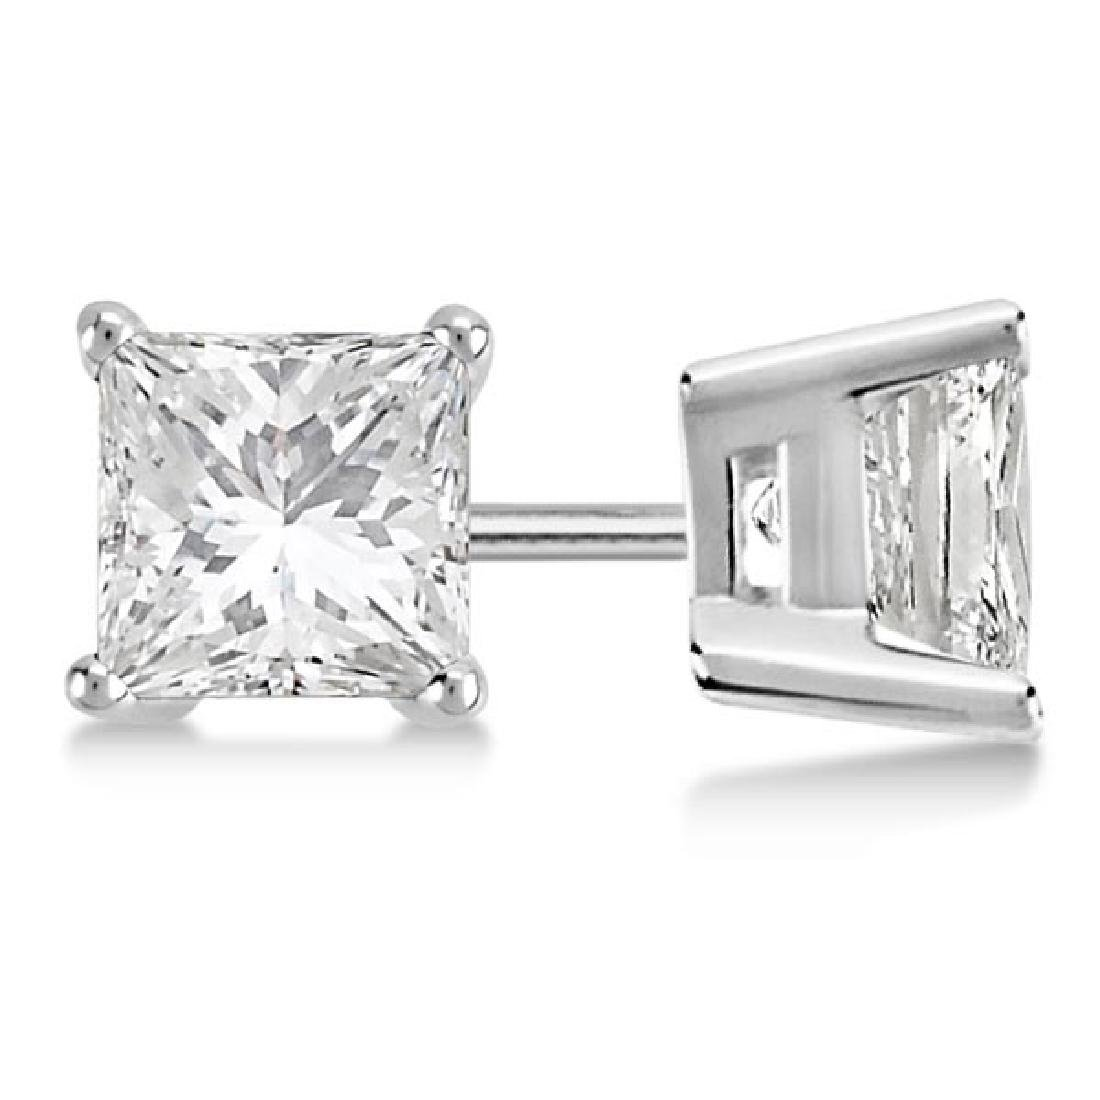 Certified 1.05 CTW Princess Diamond Stud Earrings E/SI3